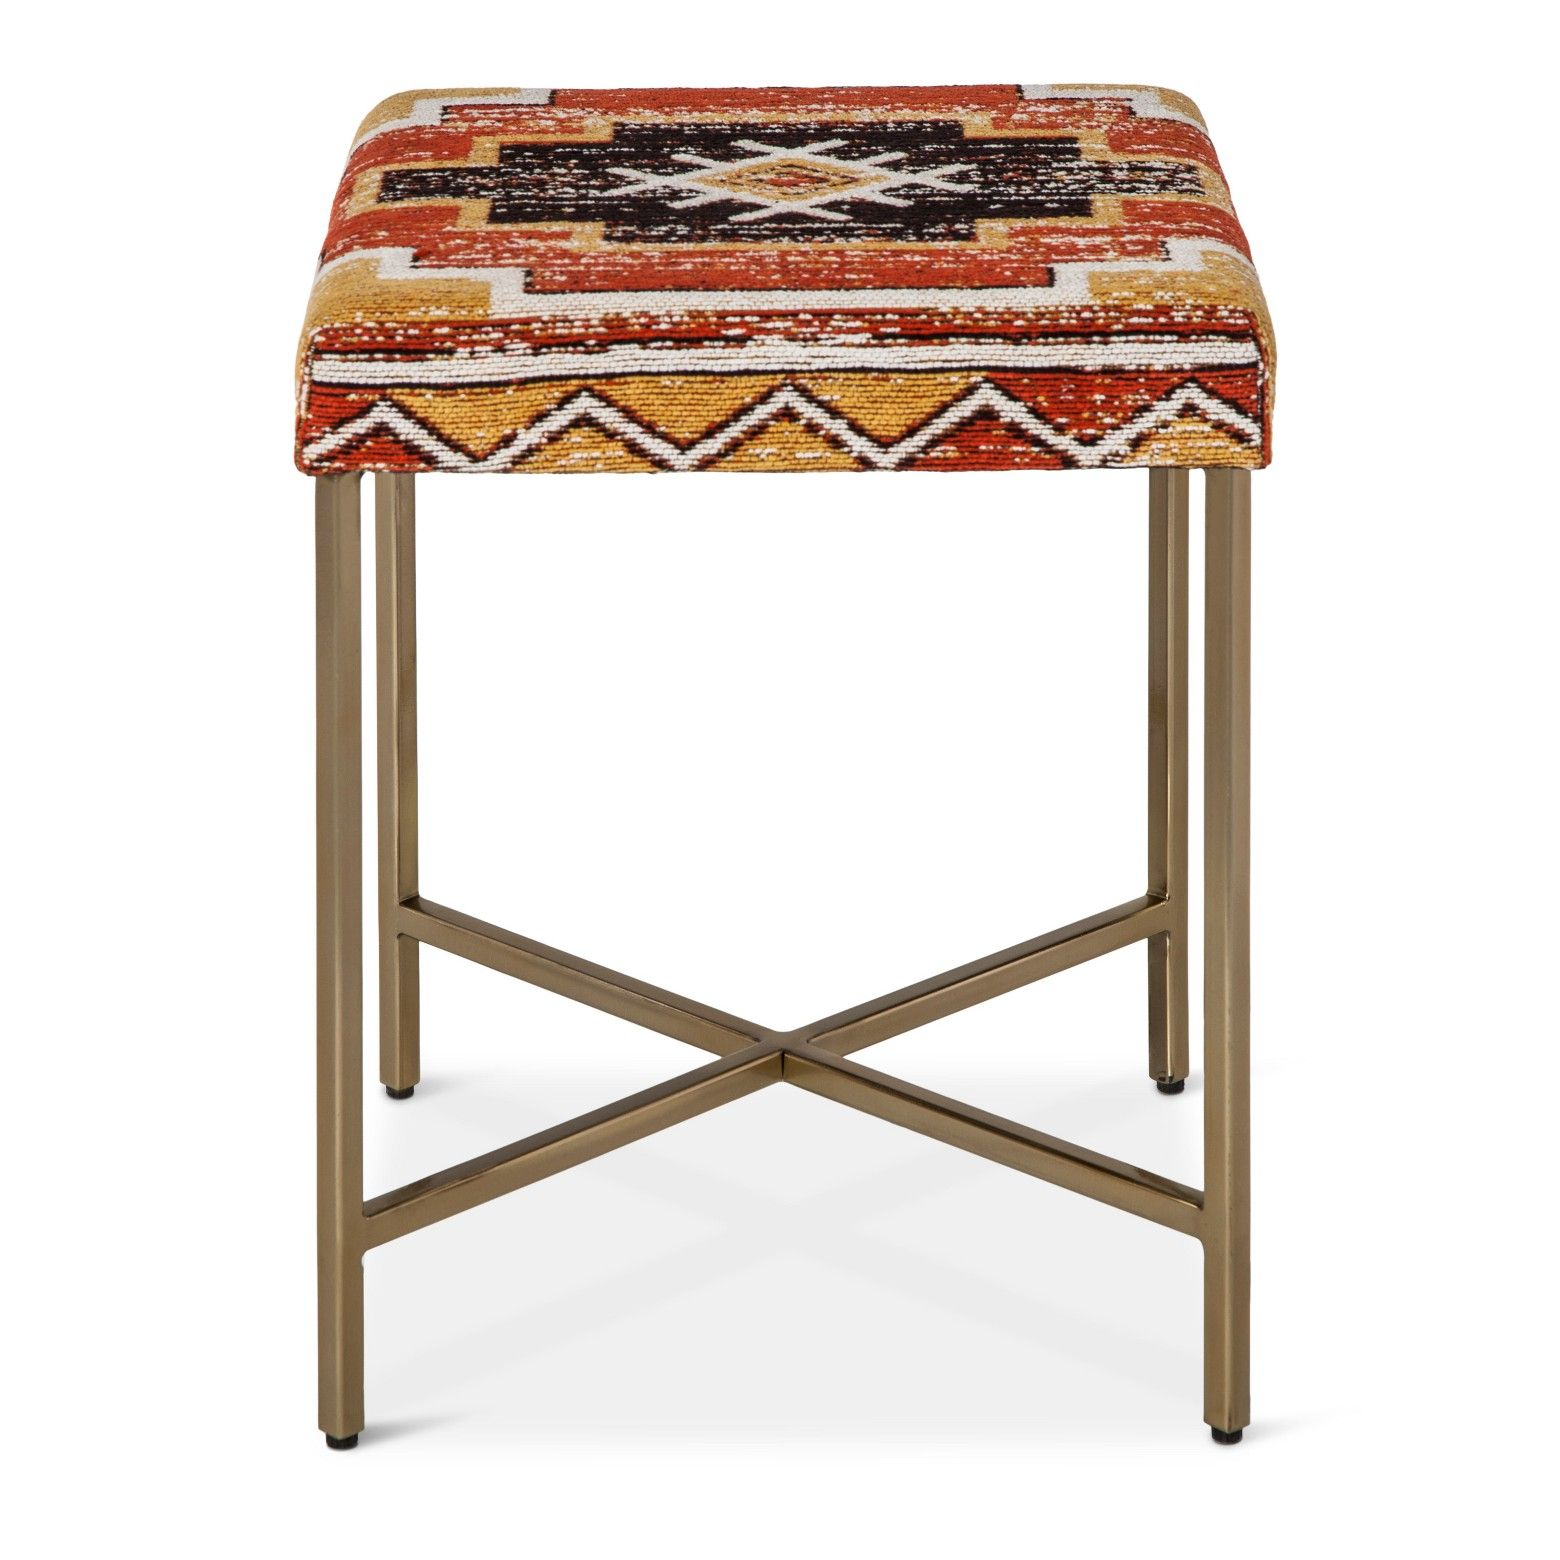 dependable seat most anywhere with the threshold square accent parquet table stool orange yellow bent acrylic coffee furniture for home pottery barn frog drum pork pie throne